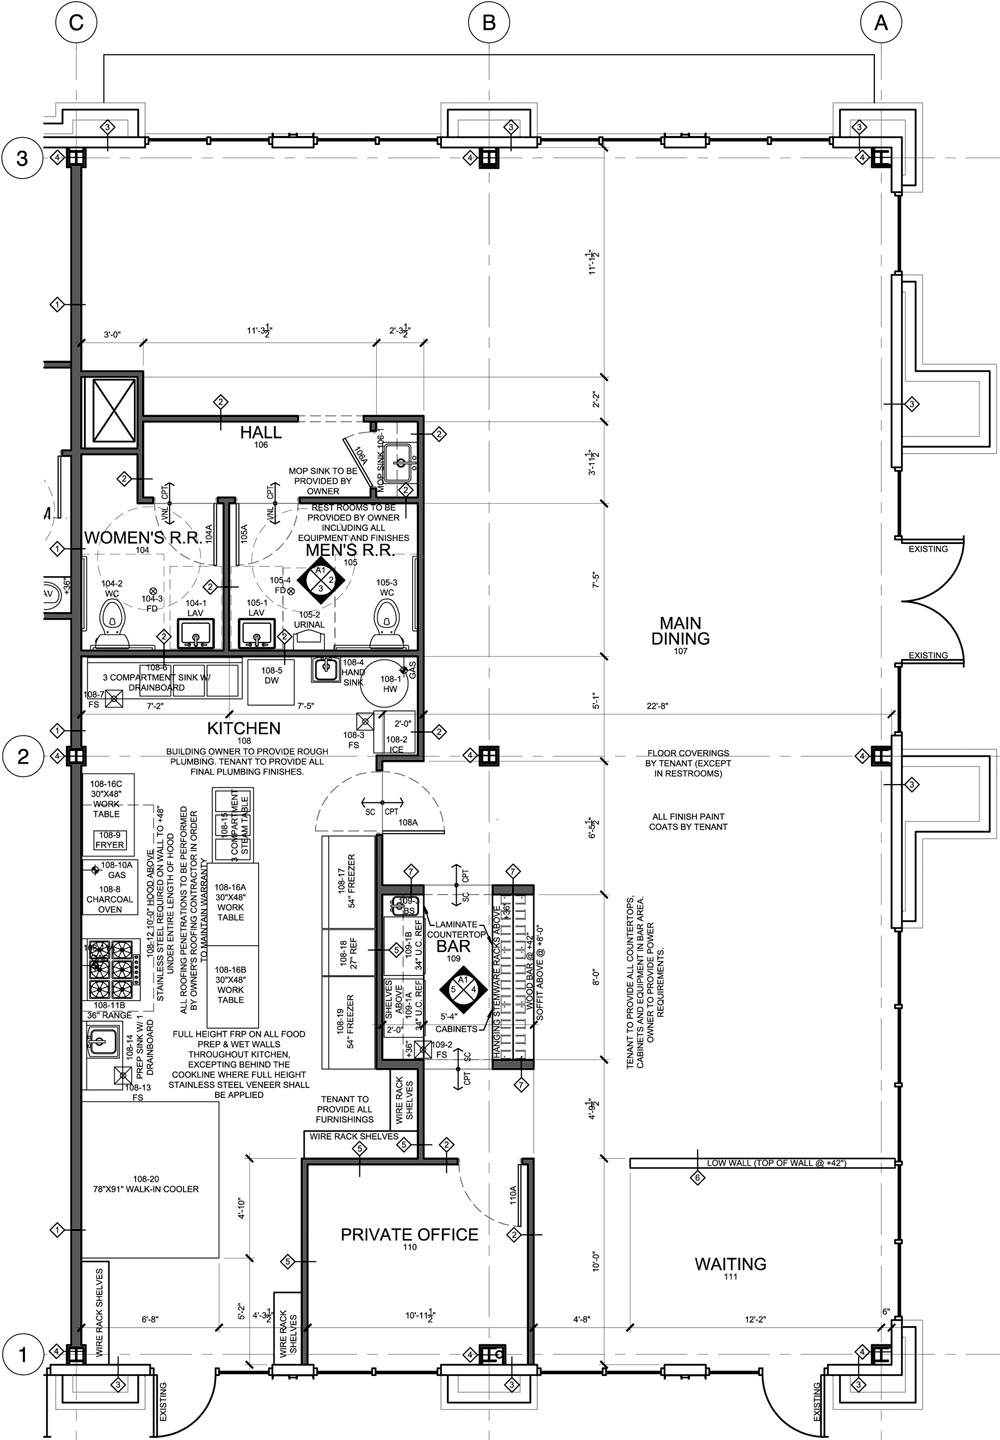 Restaurant Floor Plan For Tenant Improvement Taste Of Himalaya Nepalese Restaurant on mobile home village